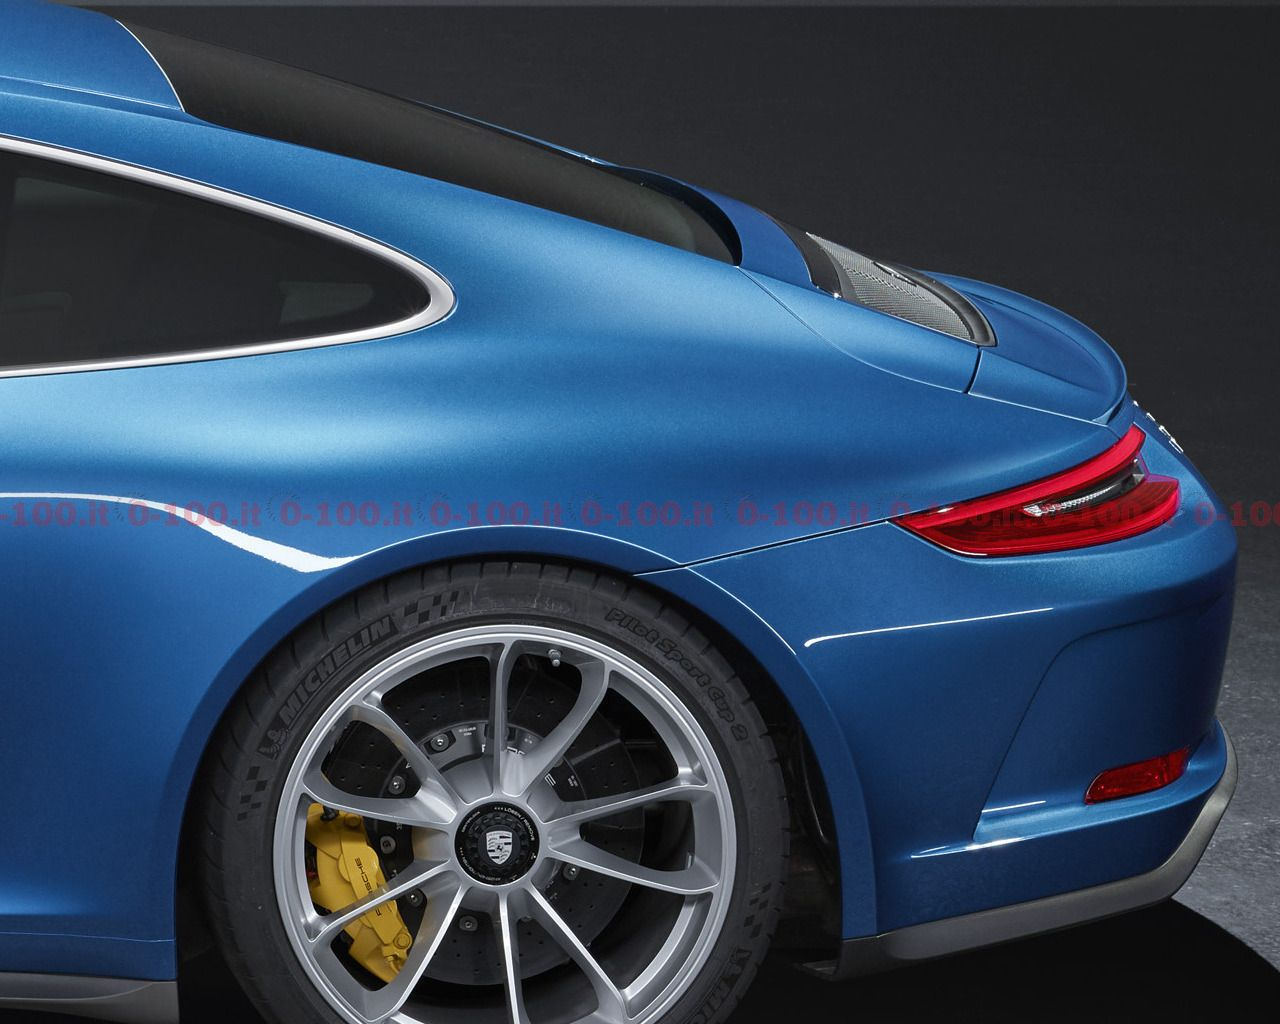 porsche-911-991-gt3-touring-package-manual-gearbox_0-100_A6